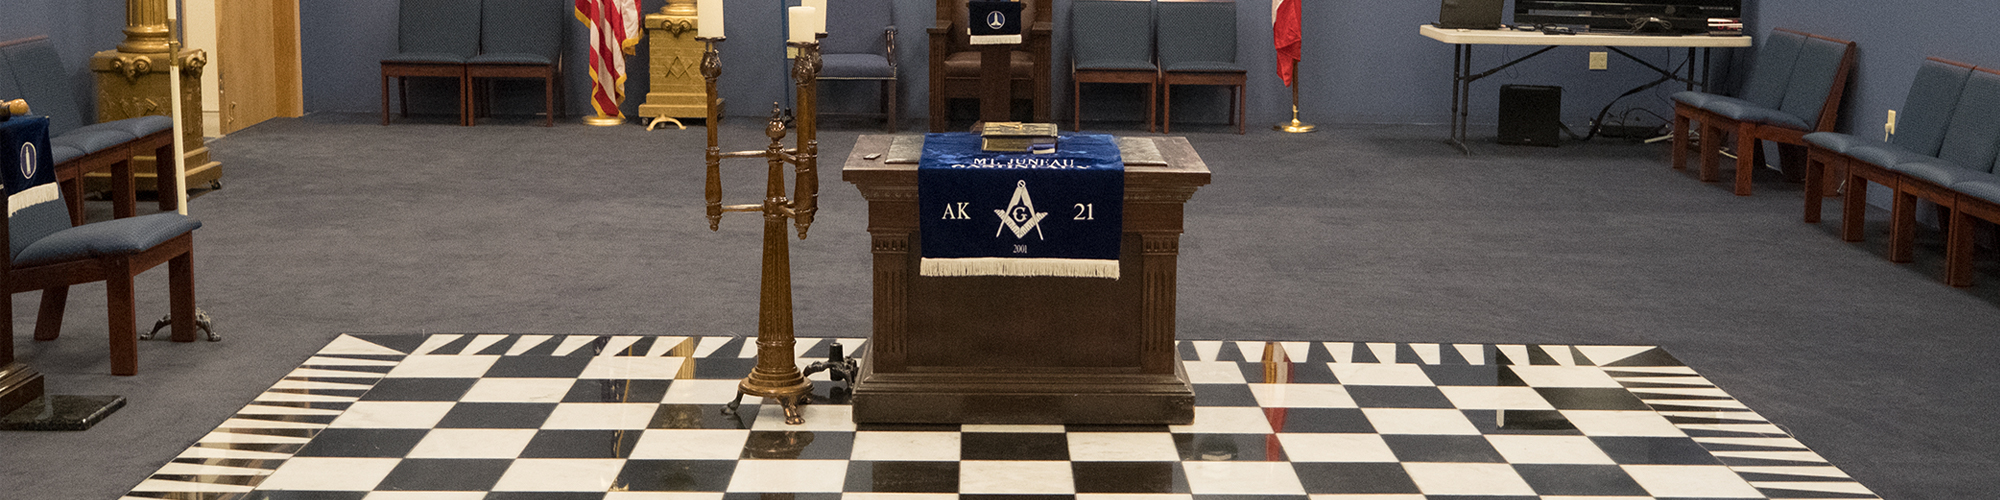 Capital City Masons - Juneau, AK